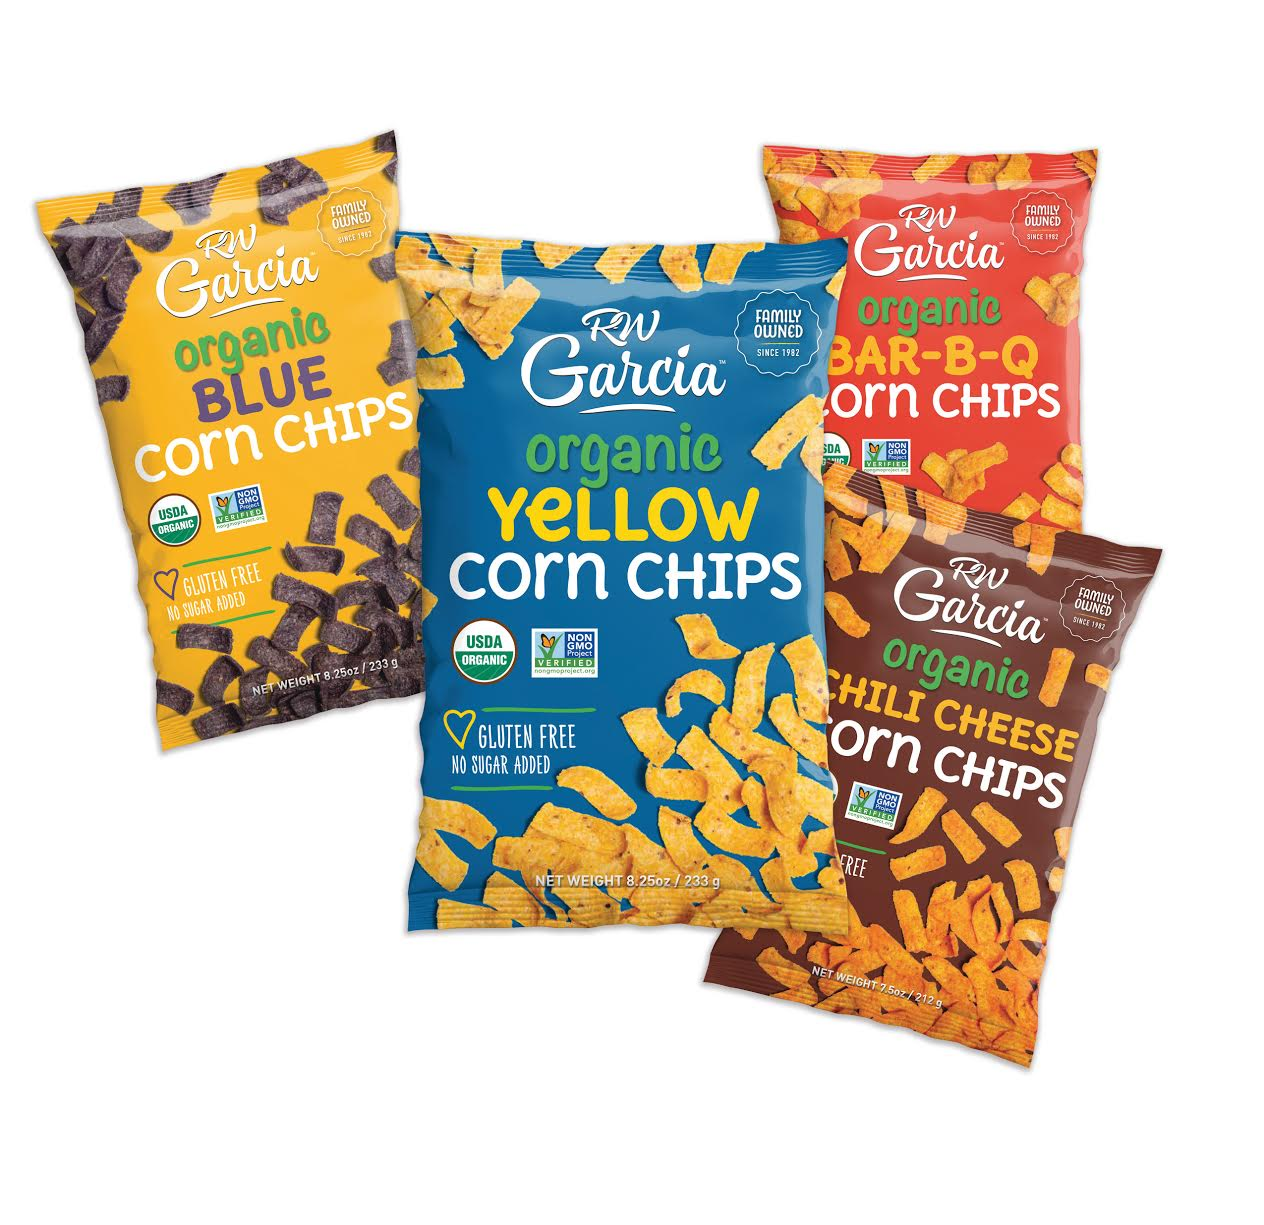 RW Garcia Launches Organic Corn Chips Line